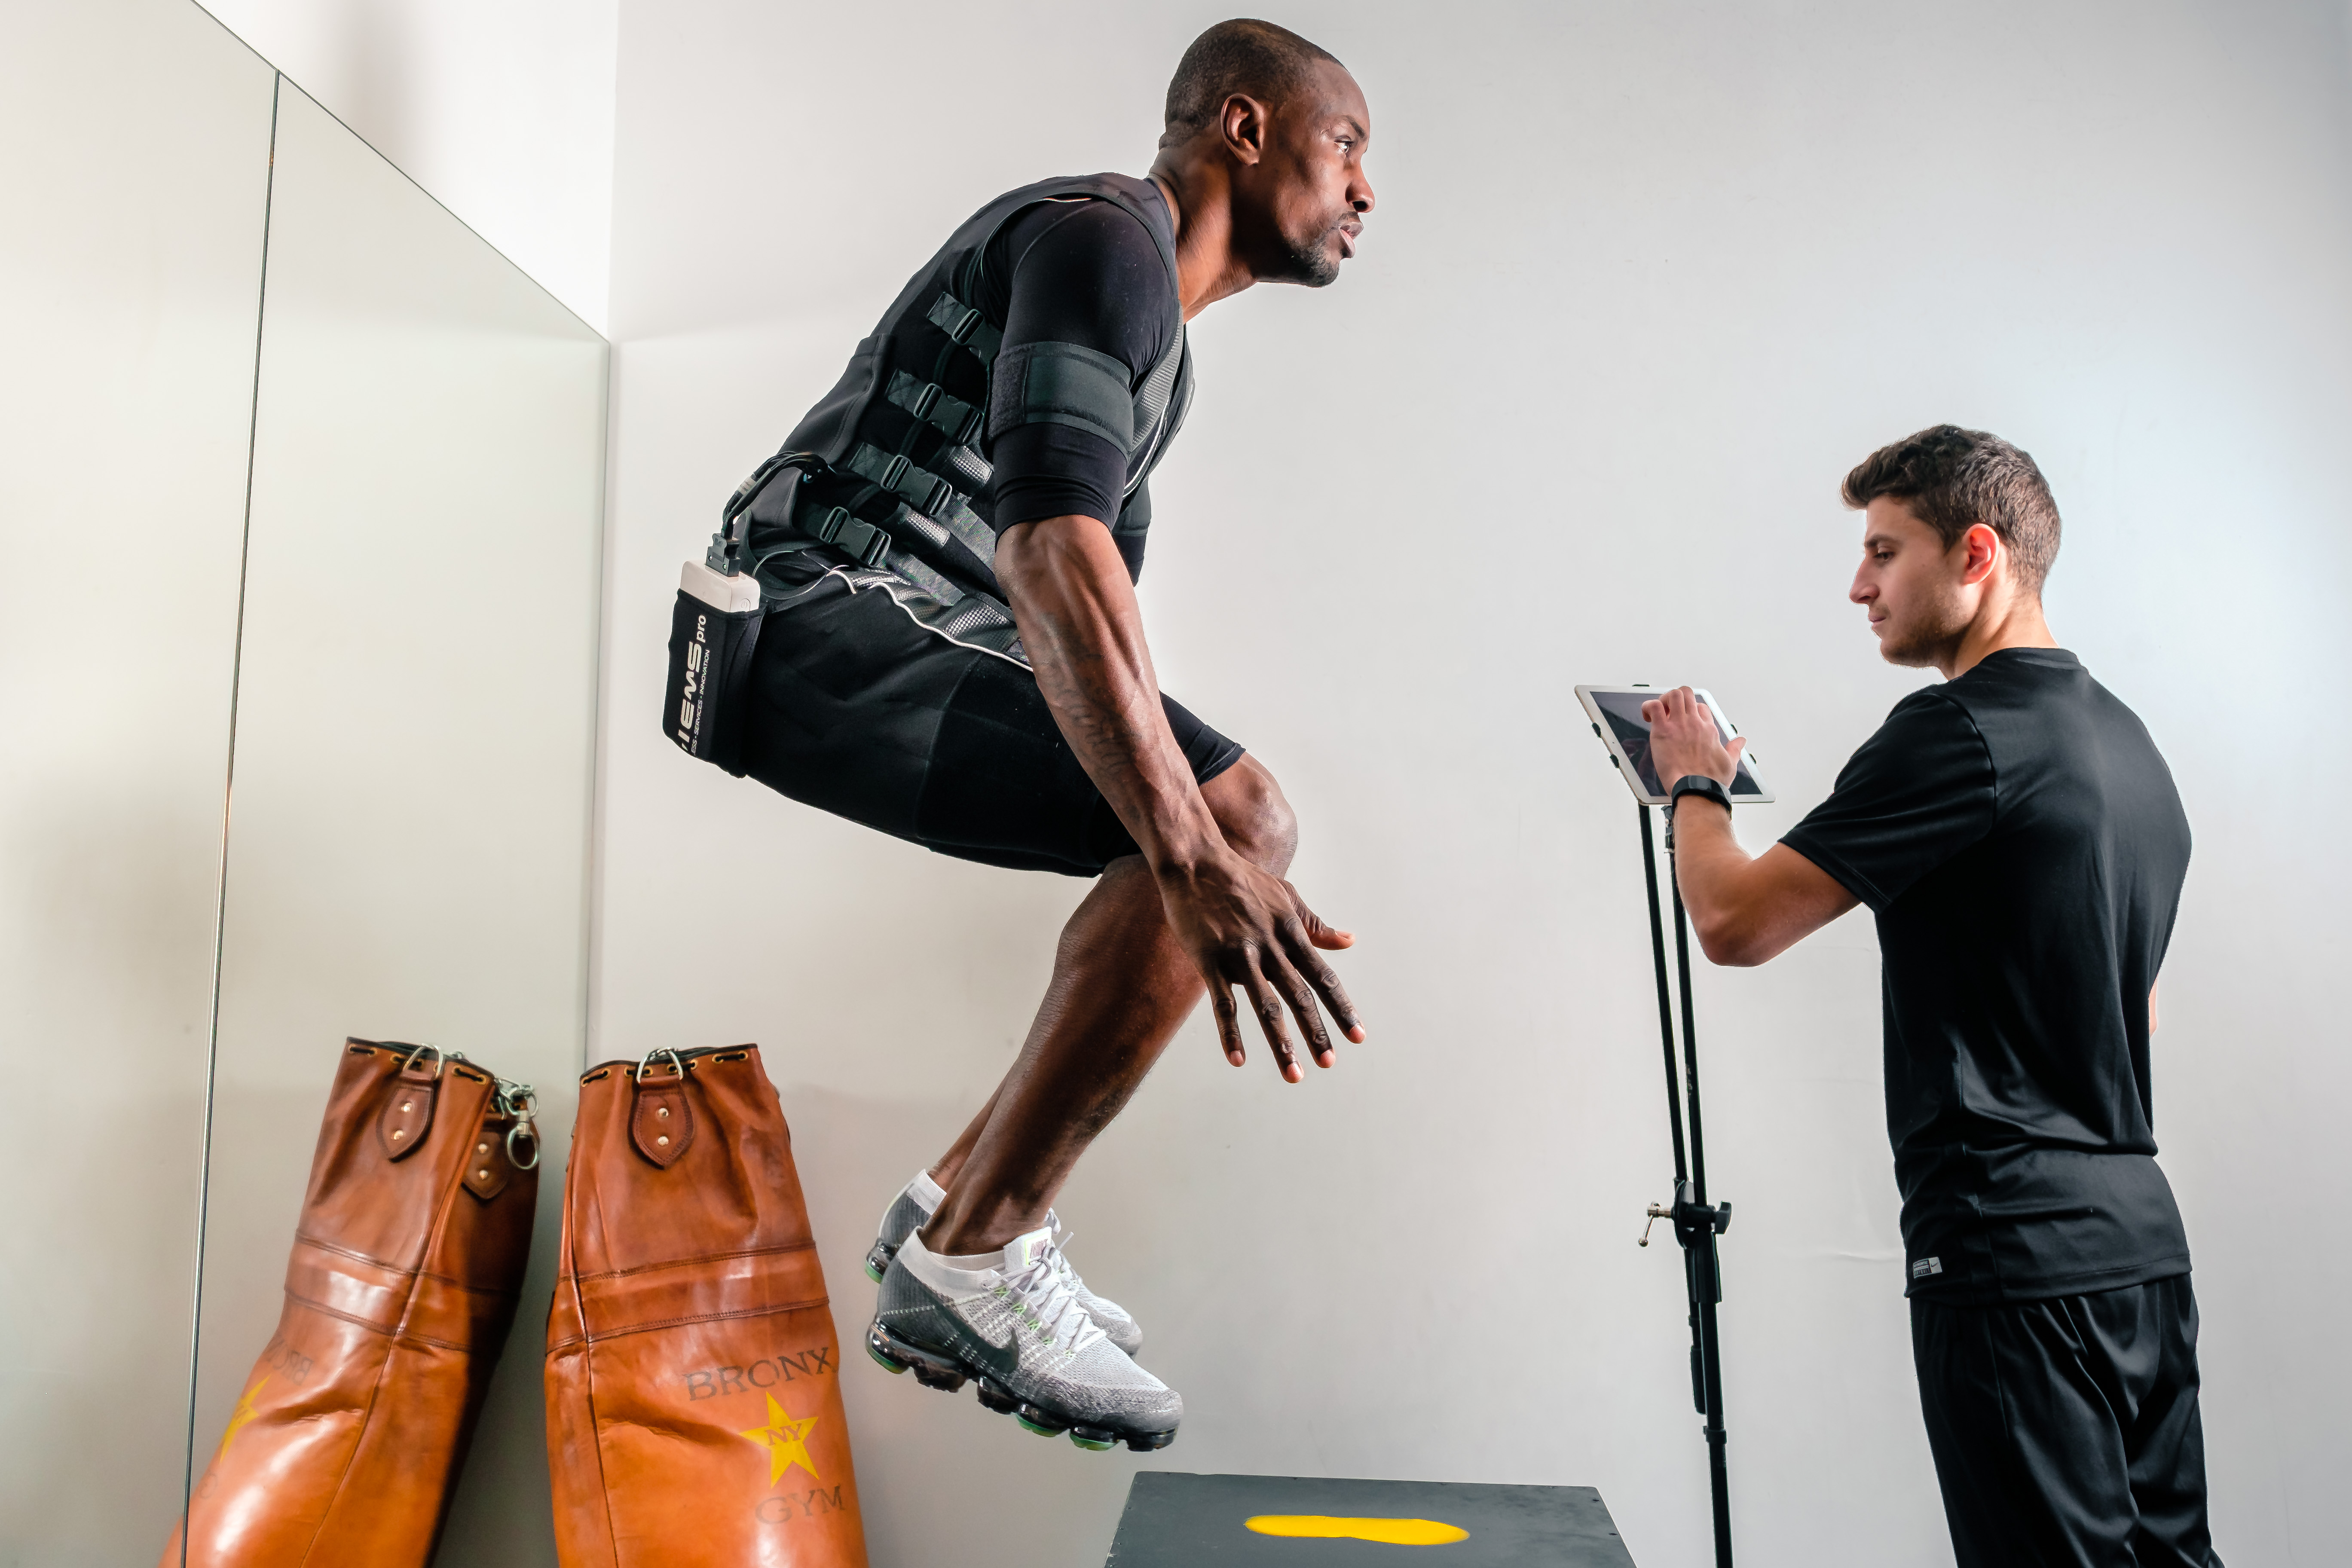 The 5 most common mistakes in training with electrostimulation